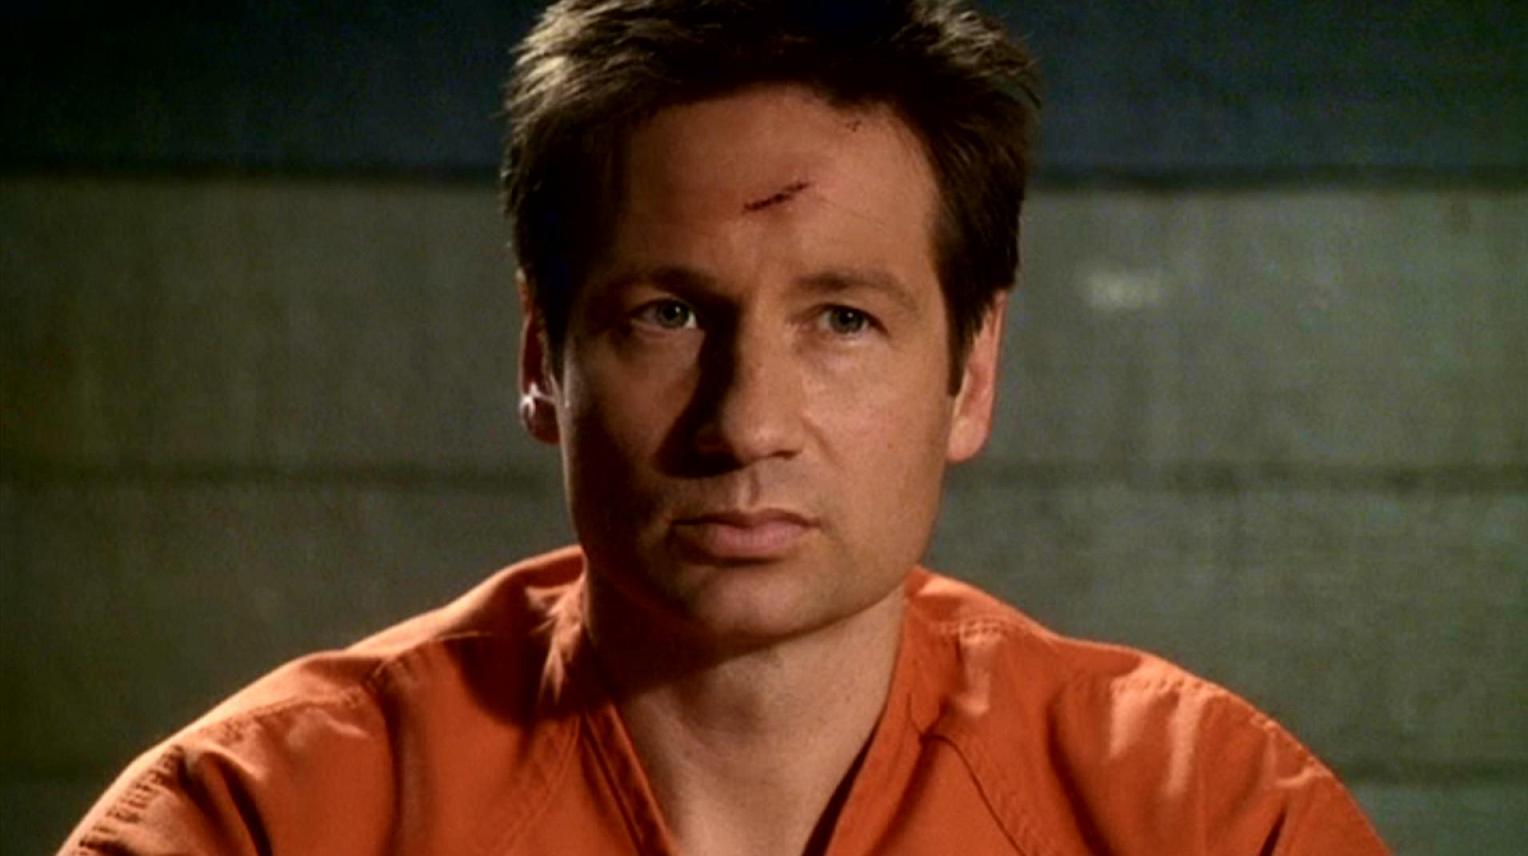 David Duchovny as Agent Mulder